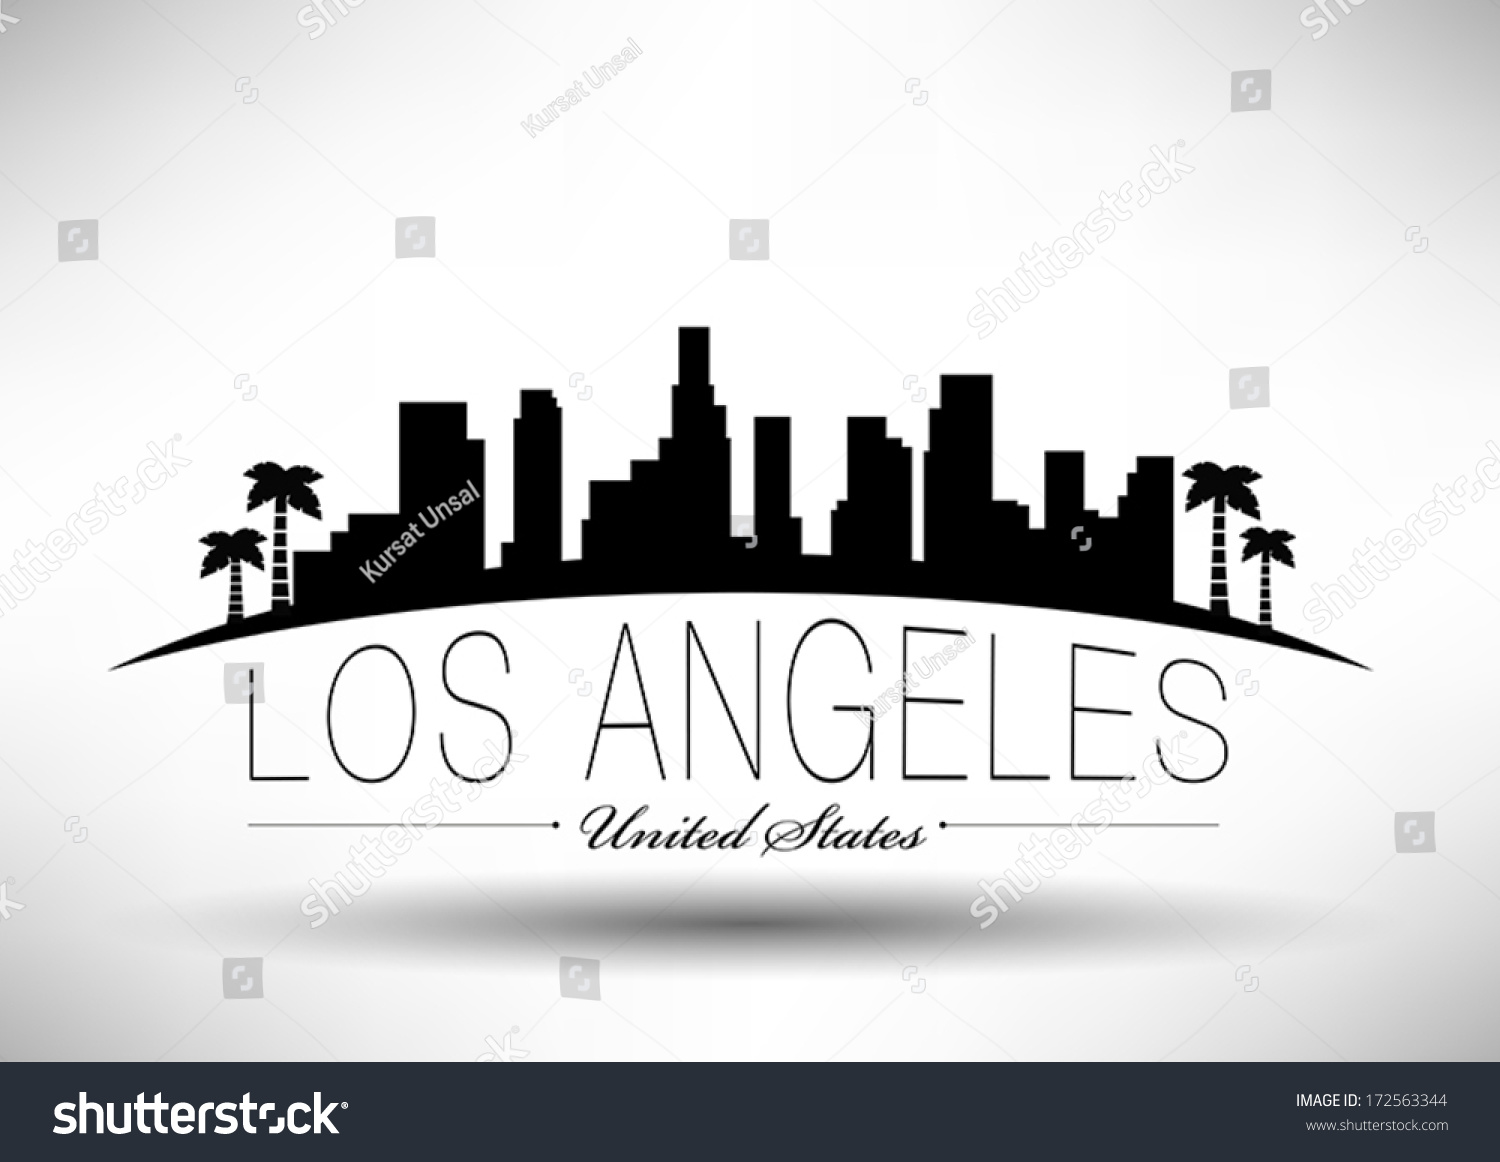 clipart los angeles - photo #5